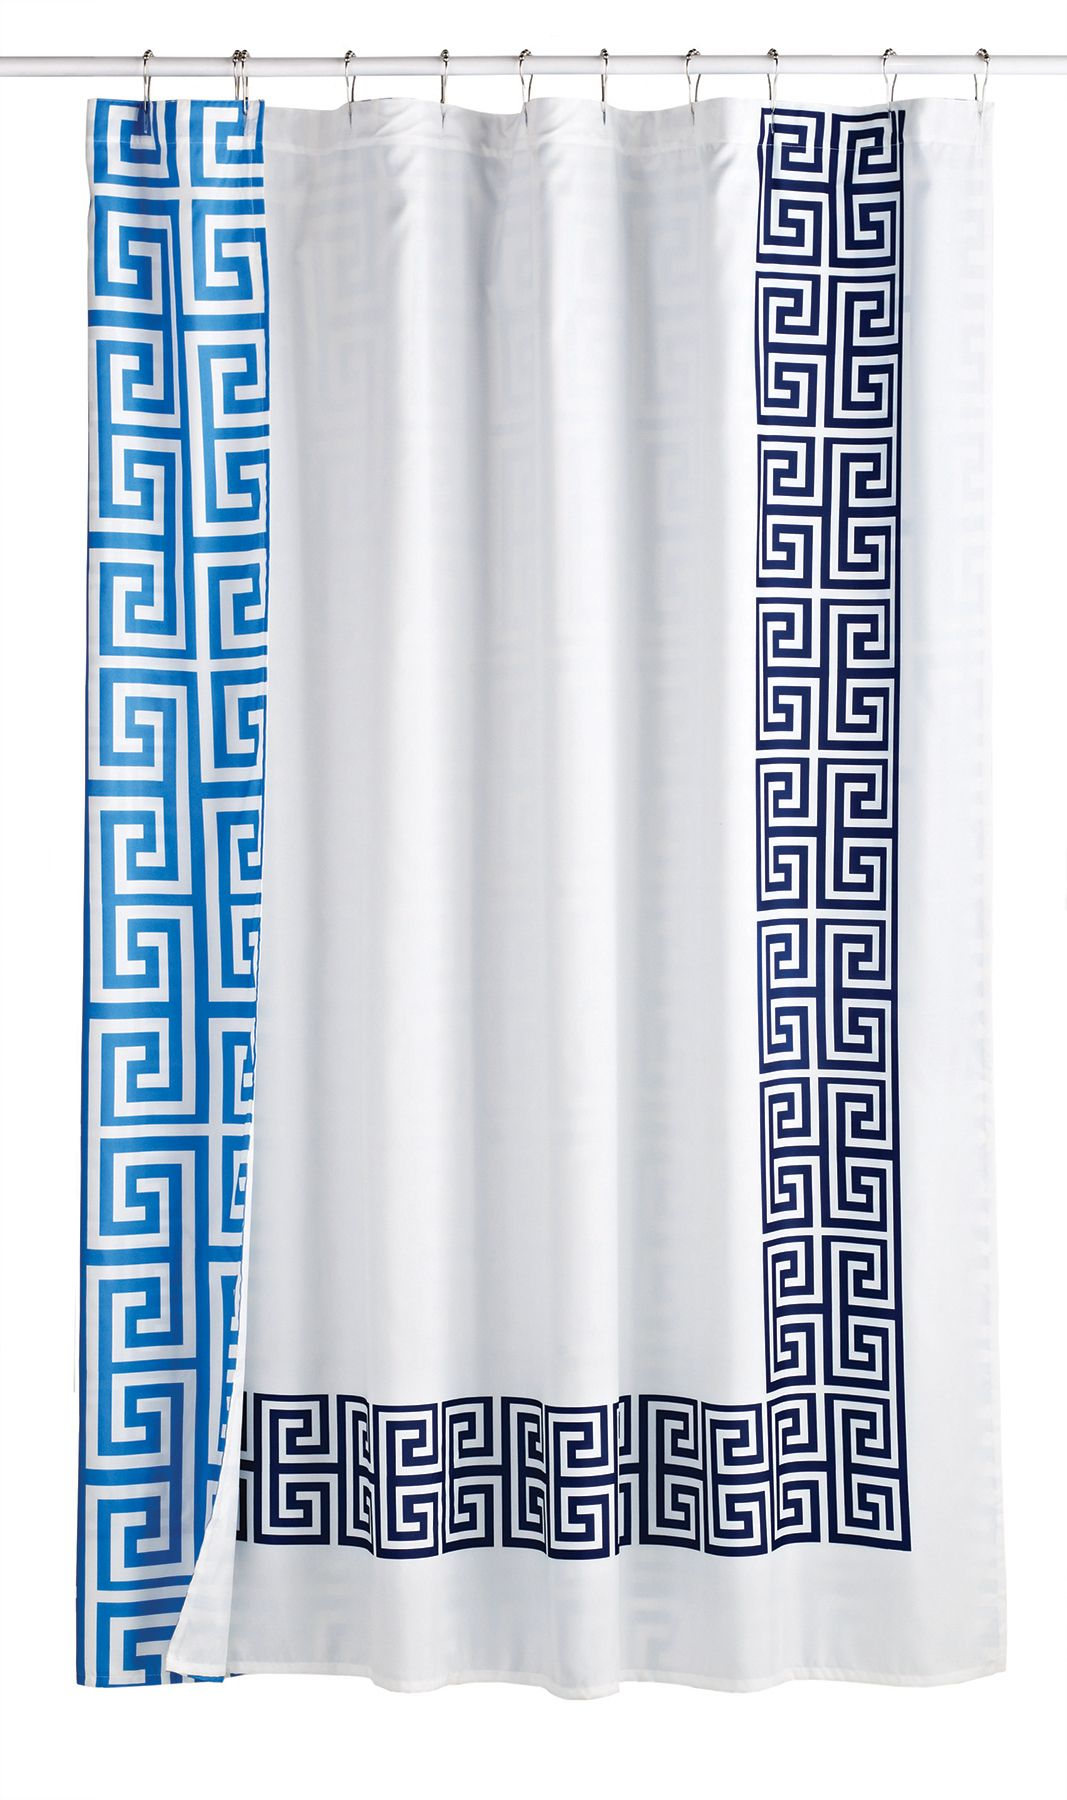 Jonathan Adler Shower Curtain Jpg 1067 1800 With Images